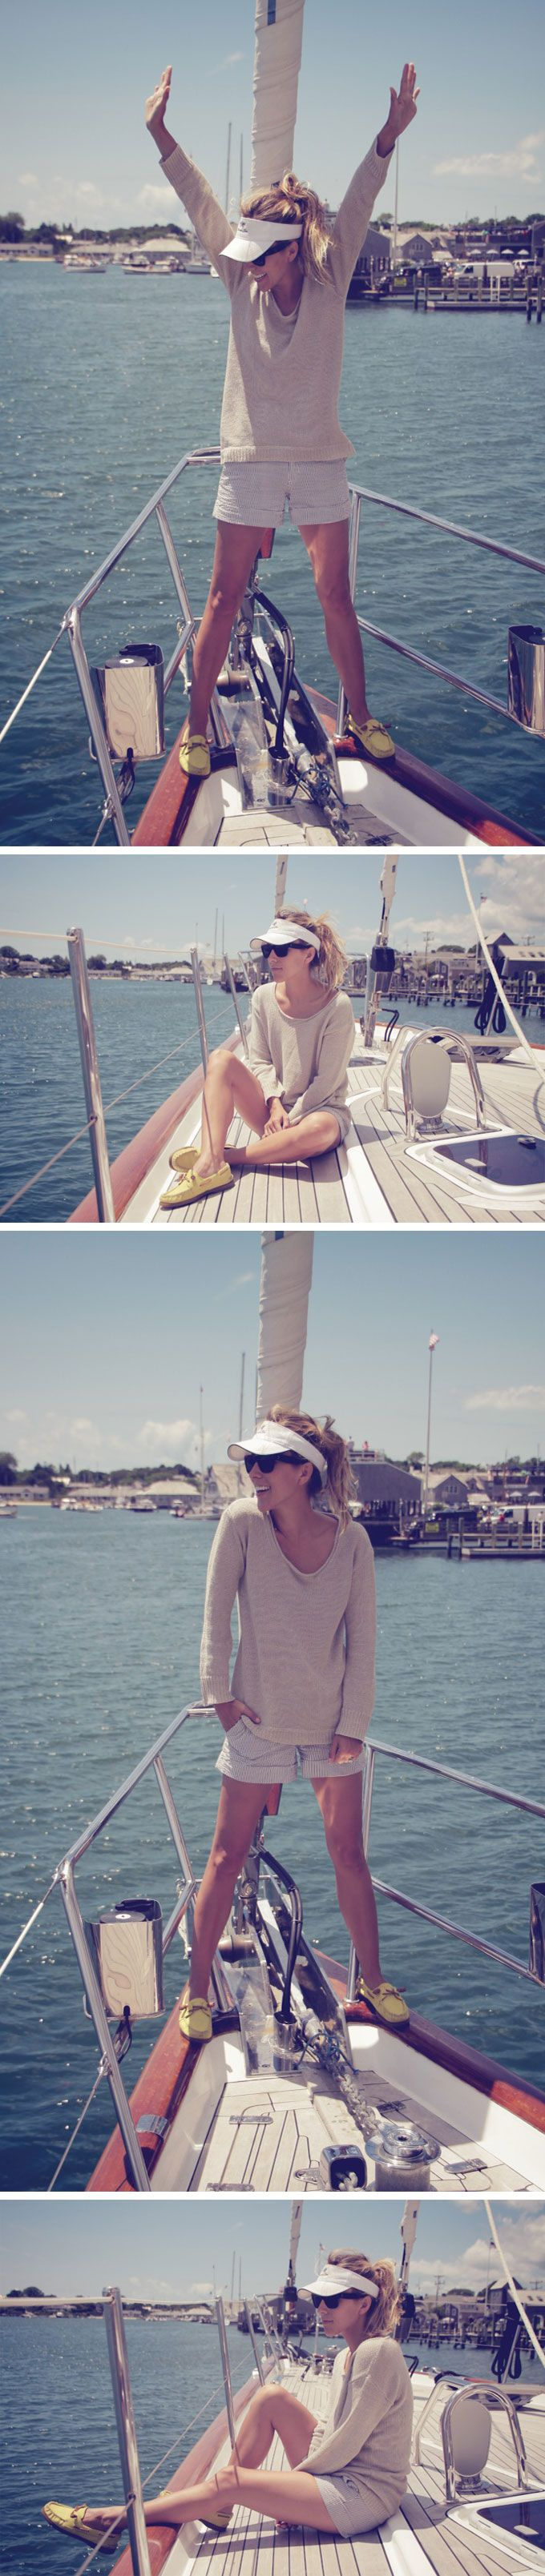 both the clothes (shoes) and the boat please :)